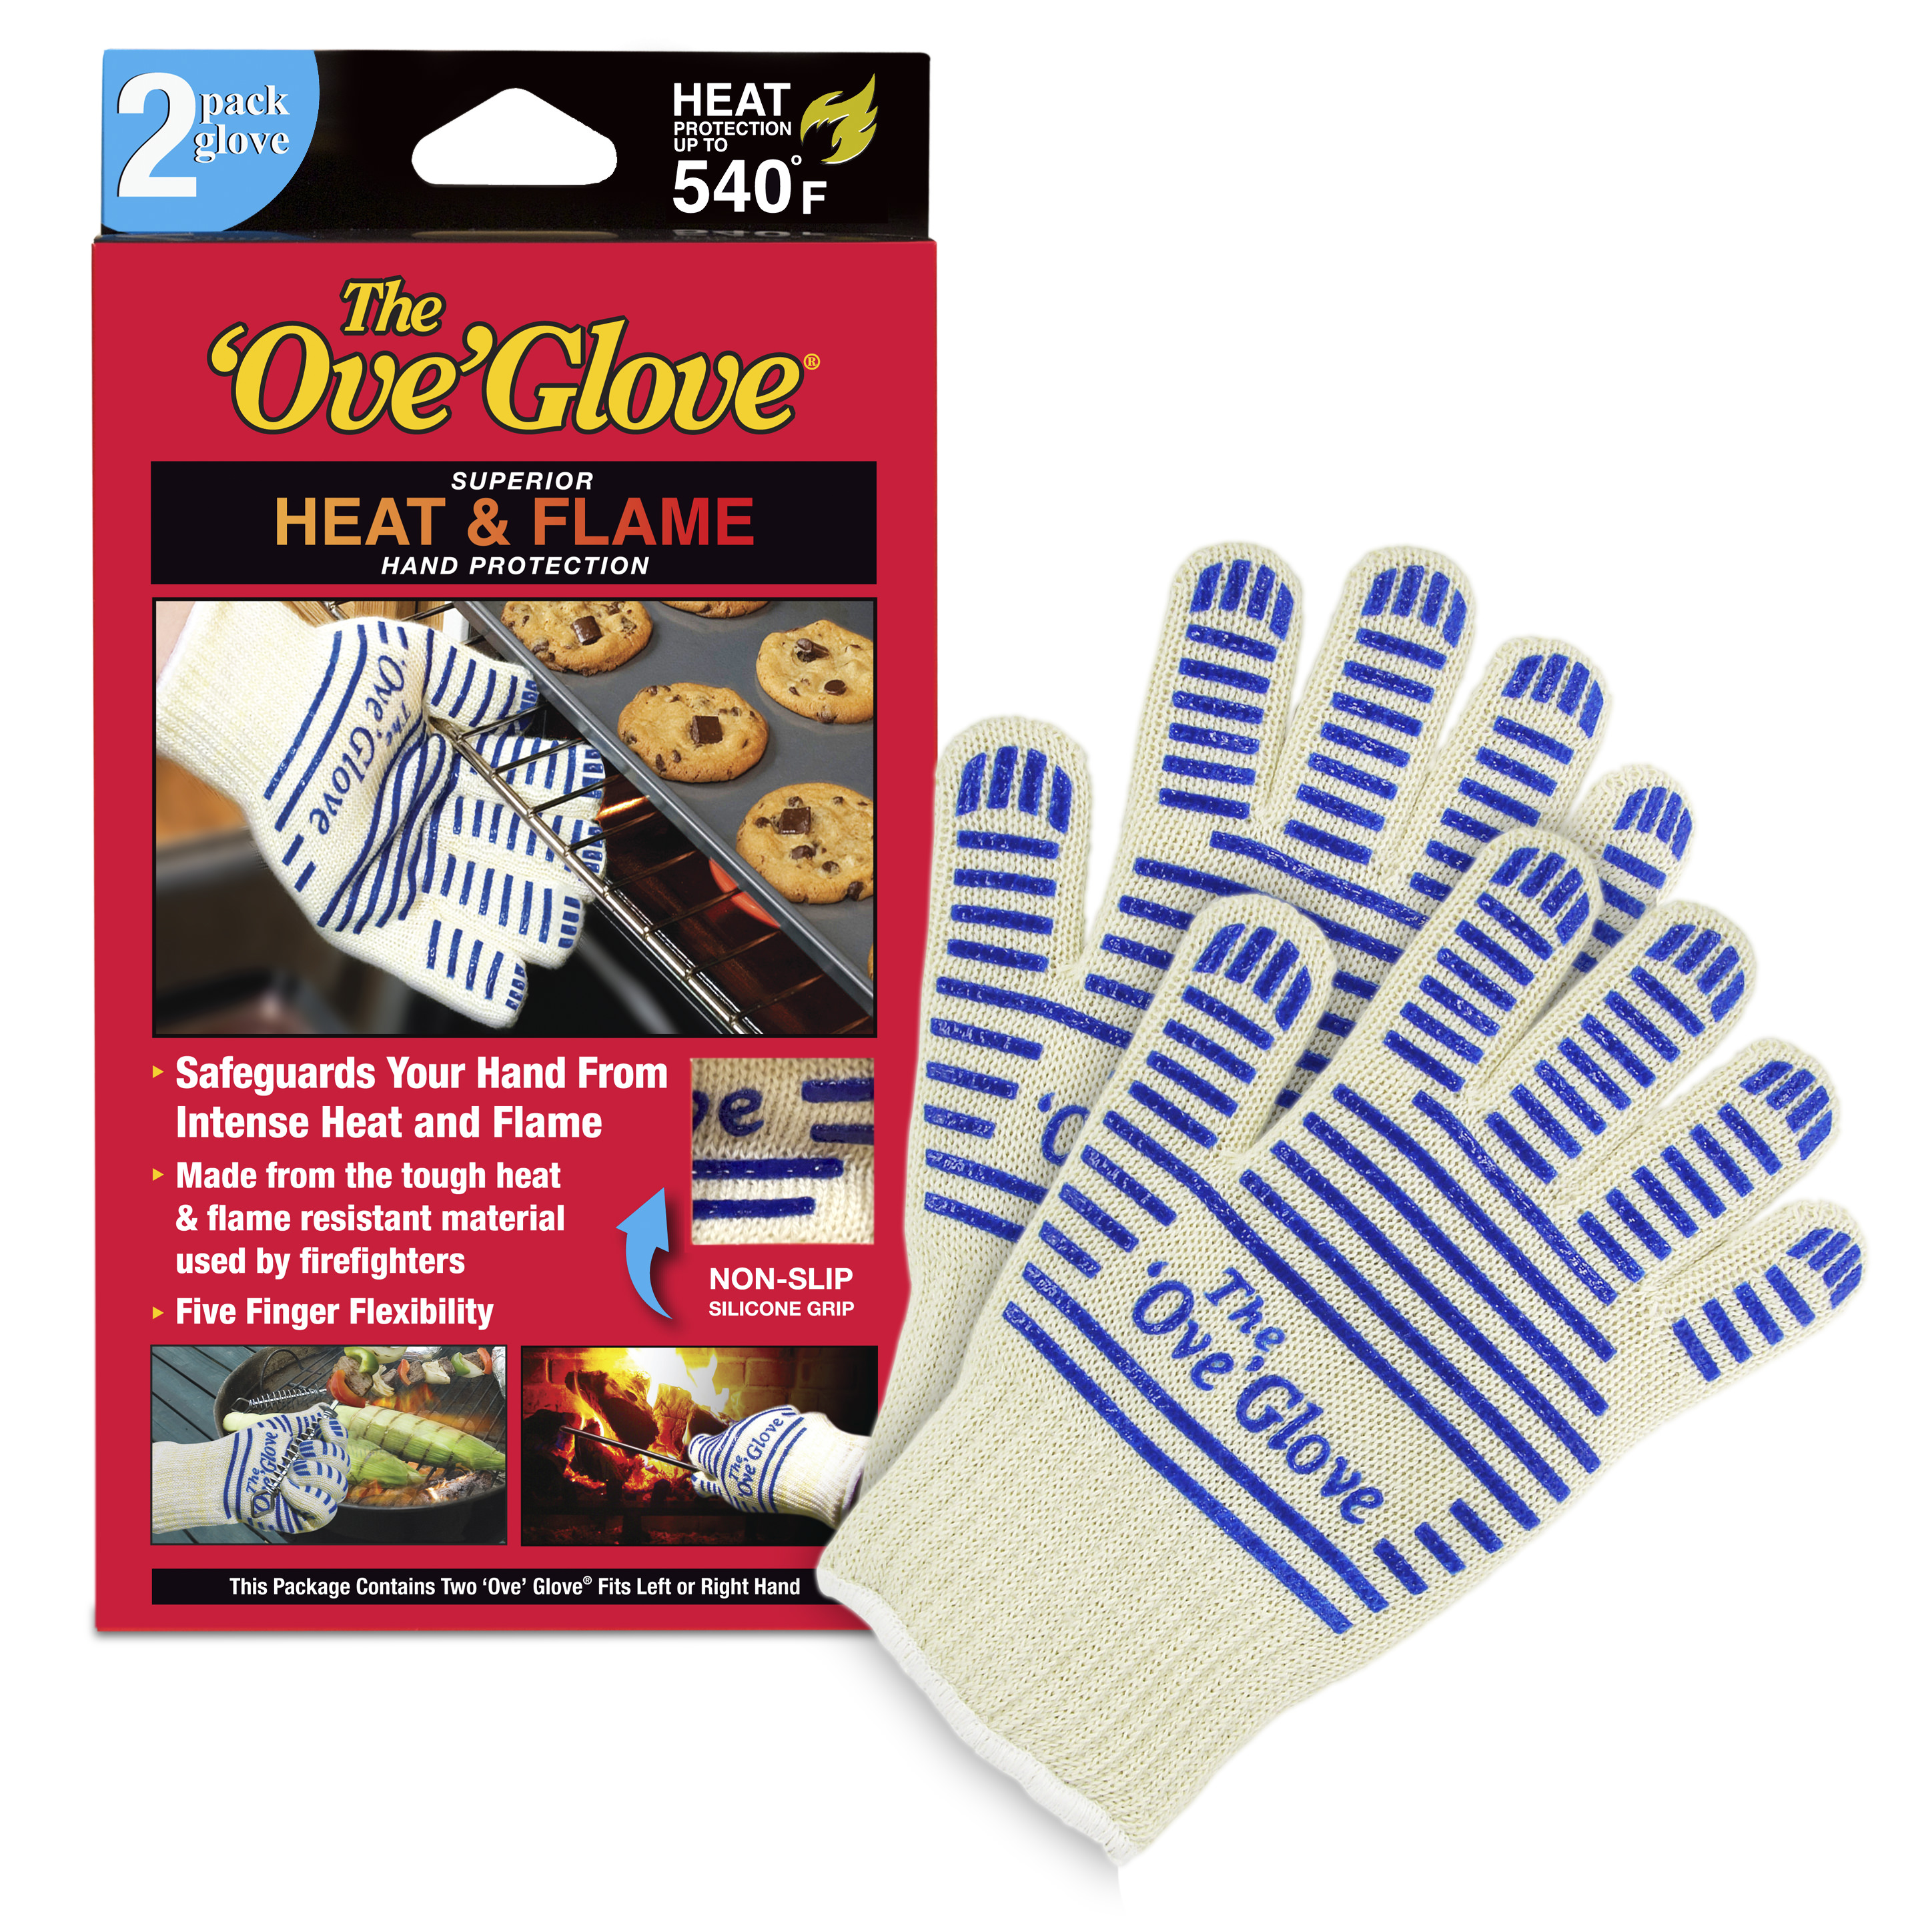 NEW! 2 Pack Ove' Glove, Superior Hand Protection from Heat & Flames!